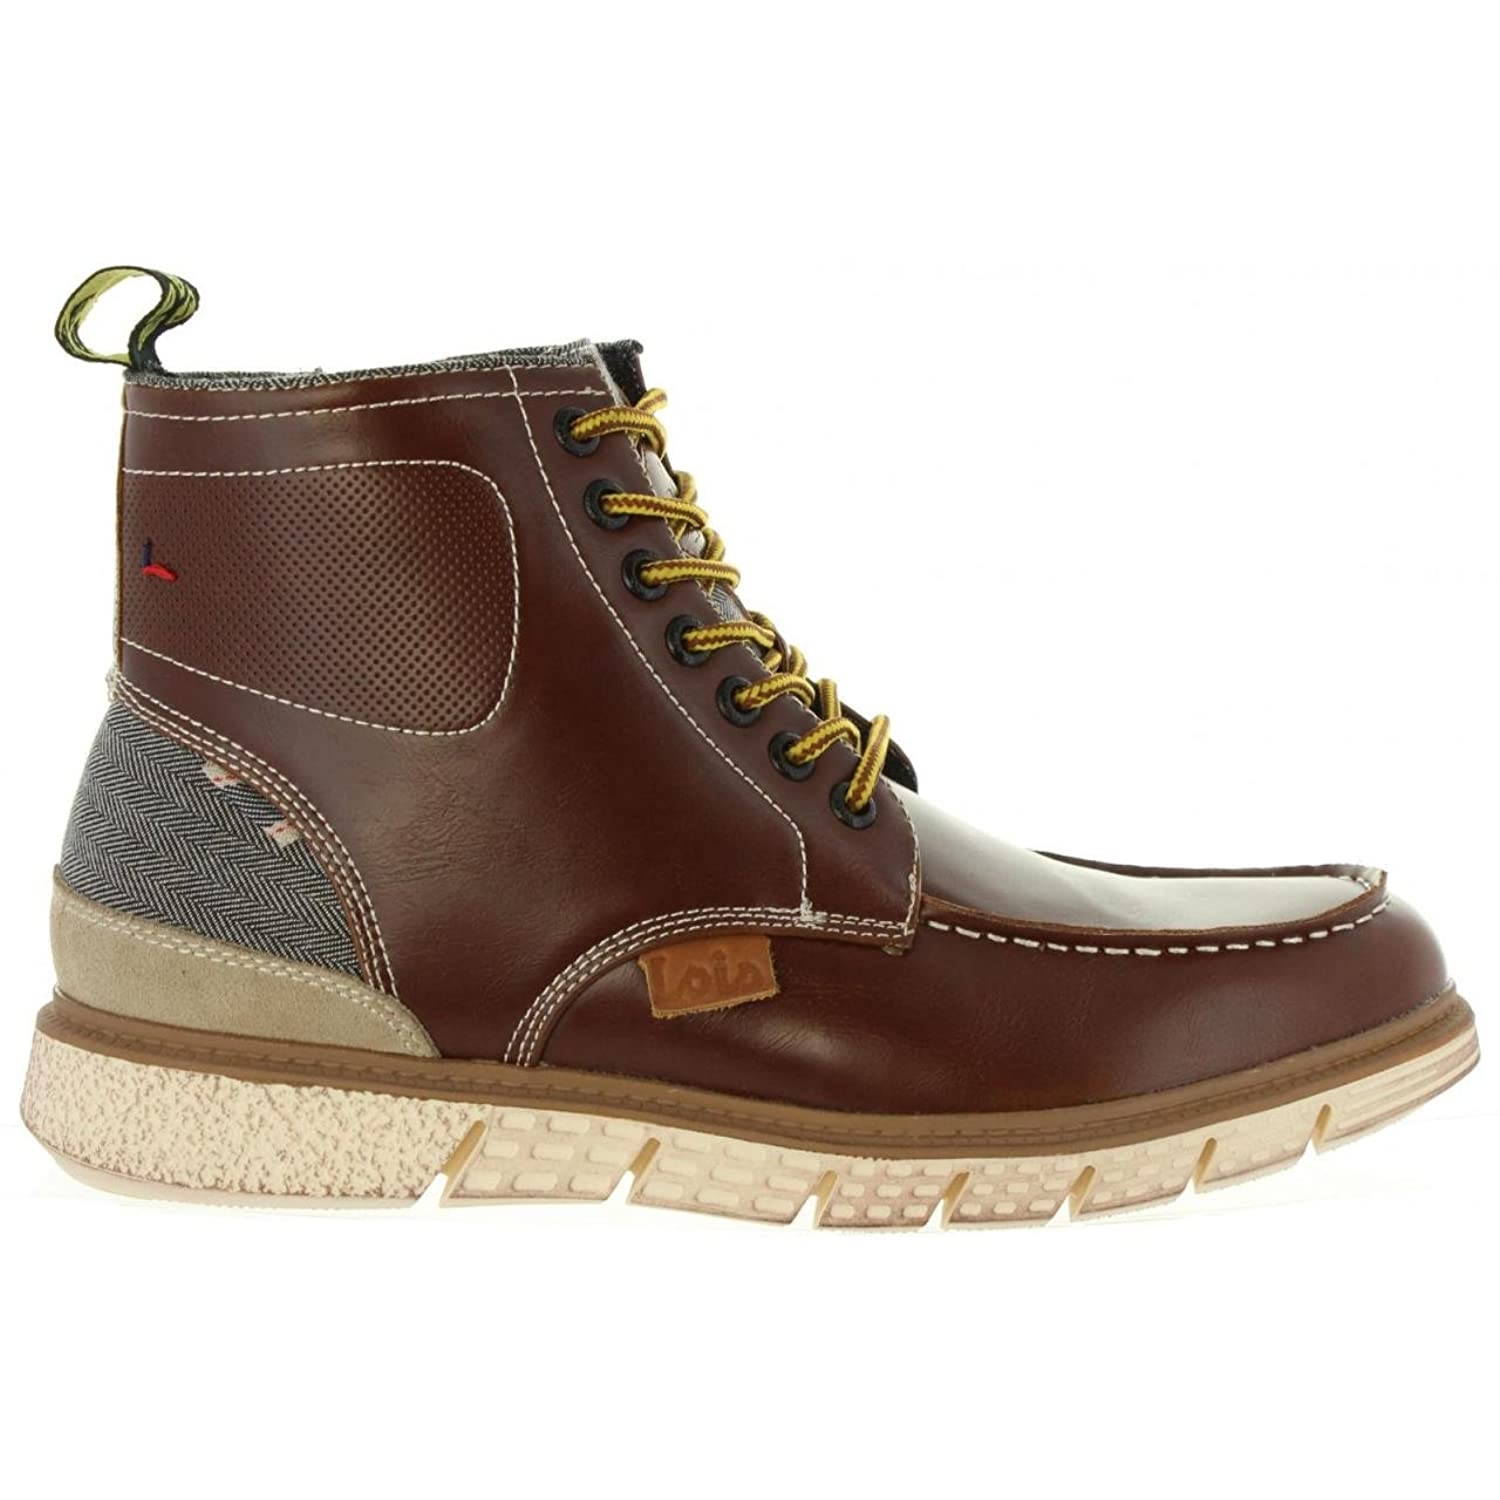 Lois Jeans 84501 Marrón - Chaussures Boot Homme